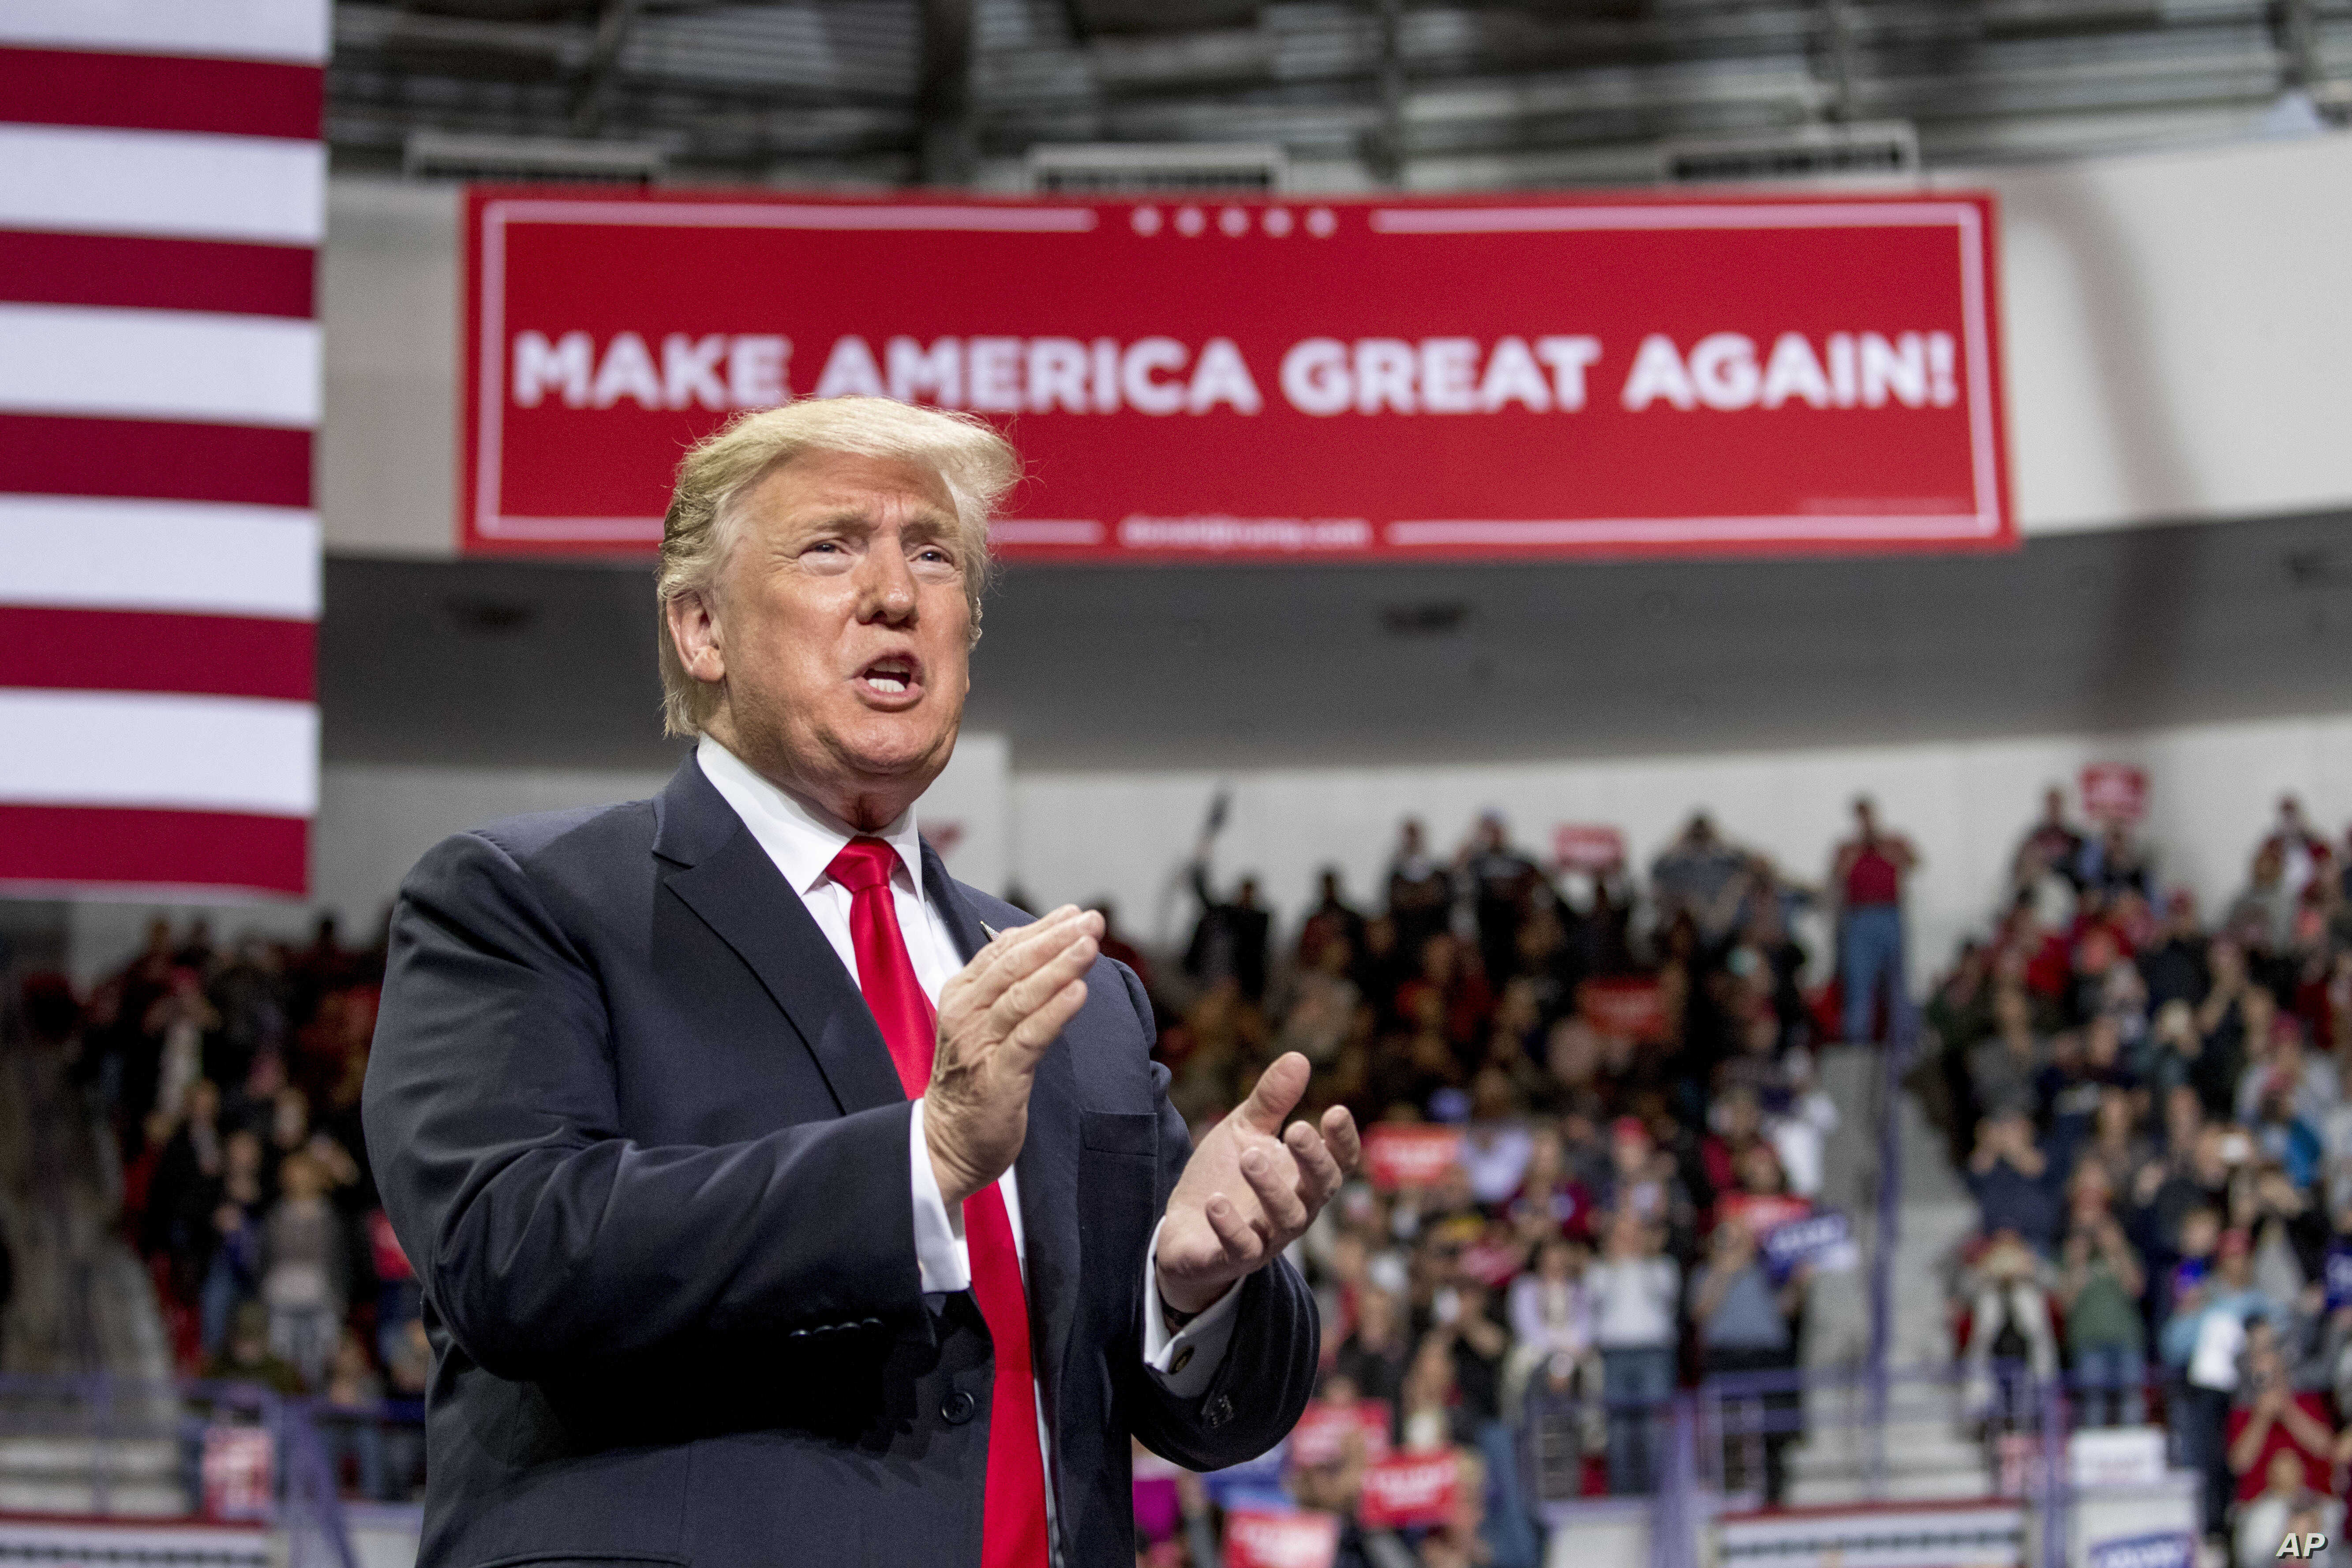 President Donald Trump arrives at a rally at Resch Center Complex in Green Bay, Wis., Saturday, April 27, 2019.